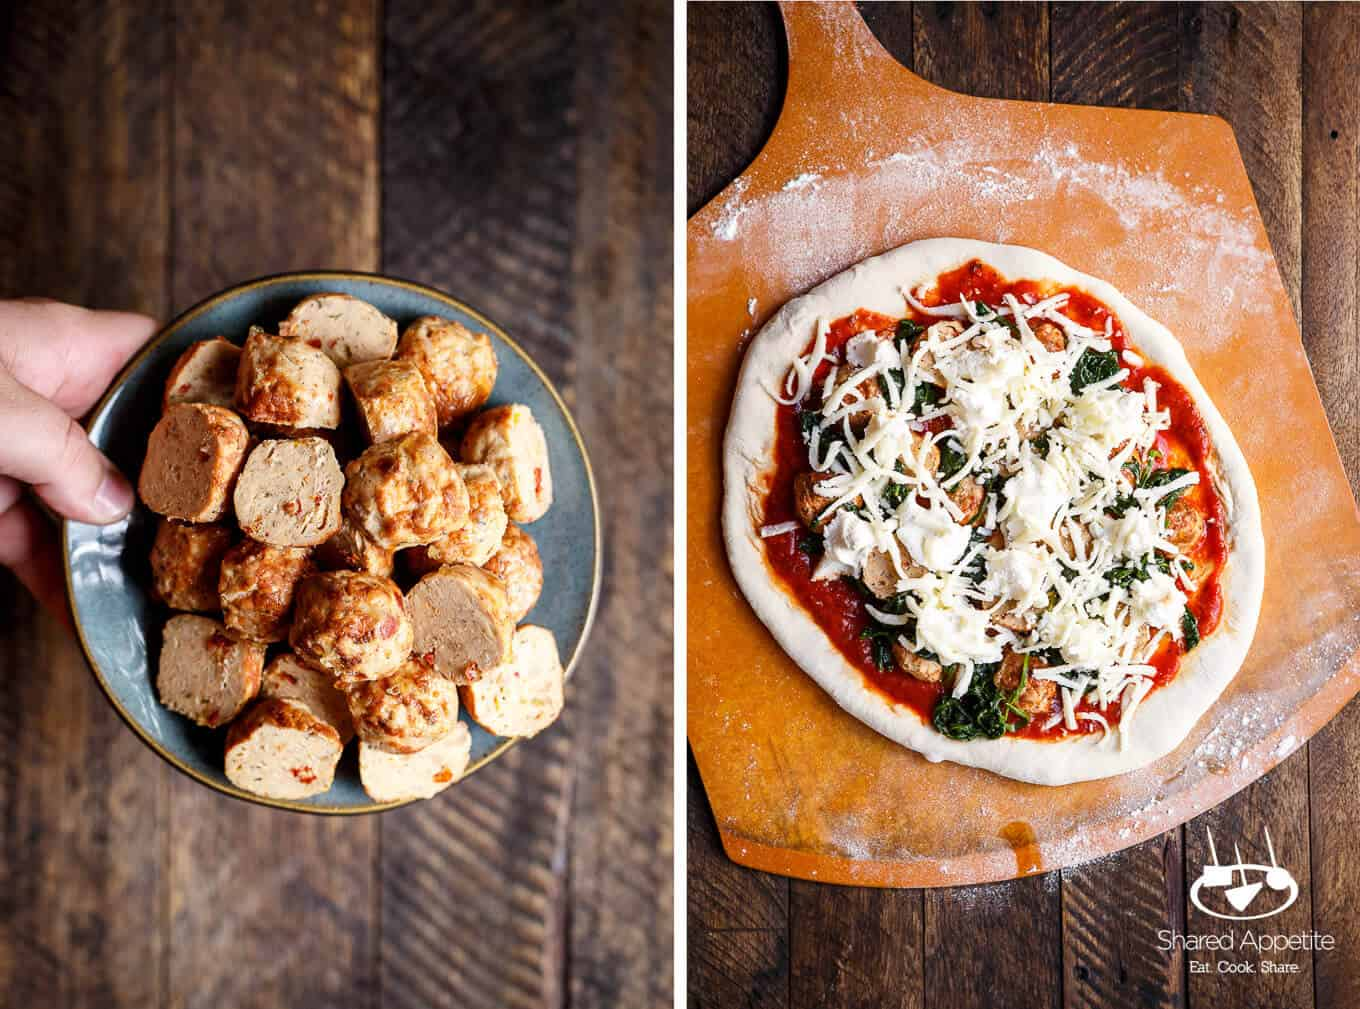 meatballs and showing the uncooked Meatball, Spinach, and Ricotta Pizza